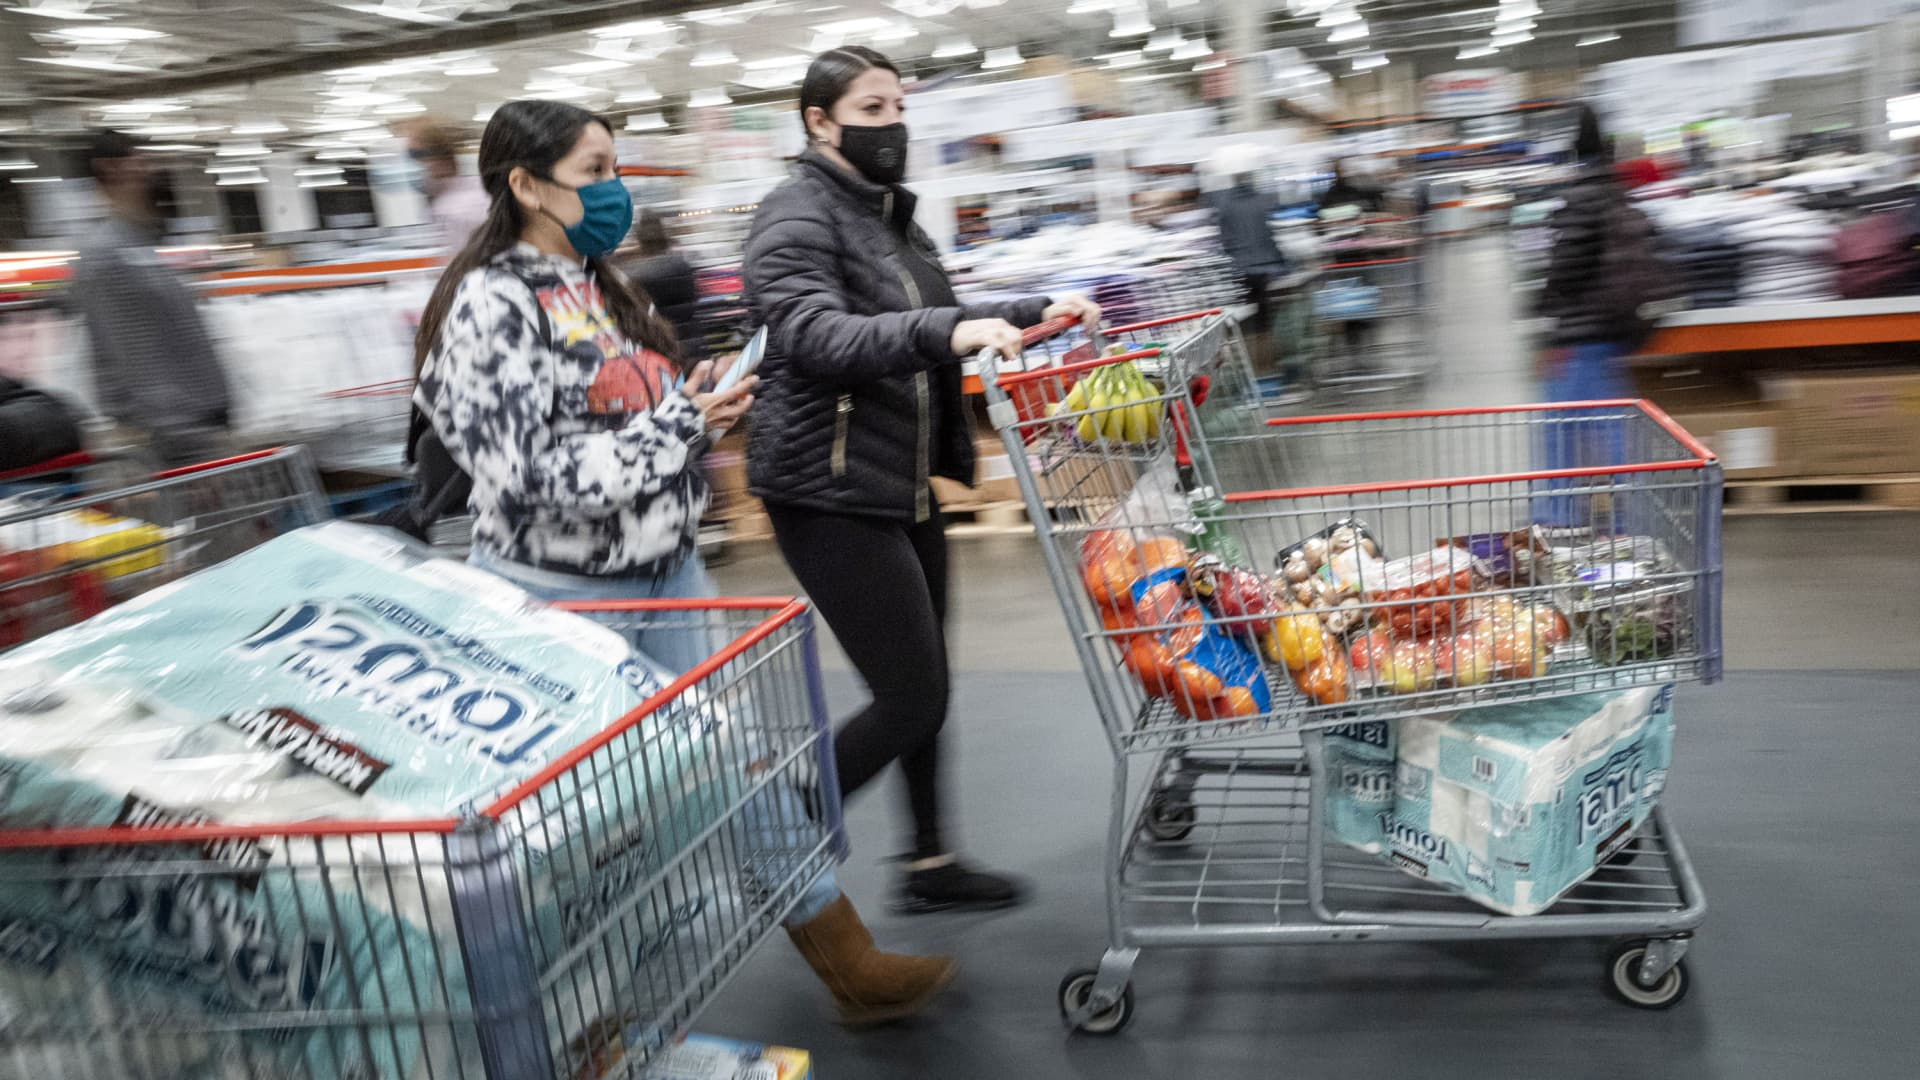 Shoppers wearing protective masks push shopping carts inside a Costco store in San Francisco, California, on Wednesday, March 3, 2021.